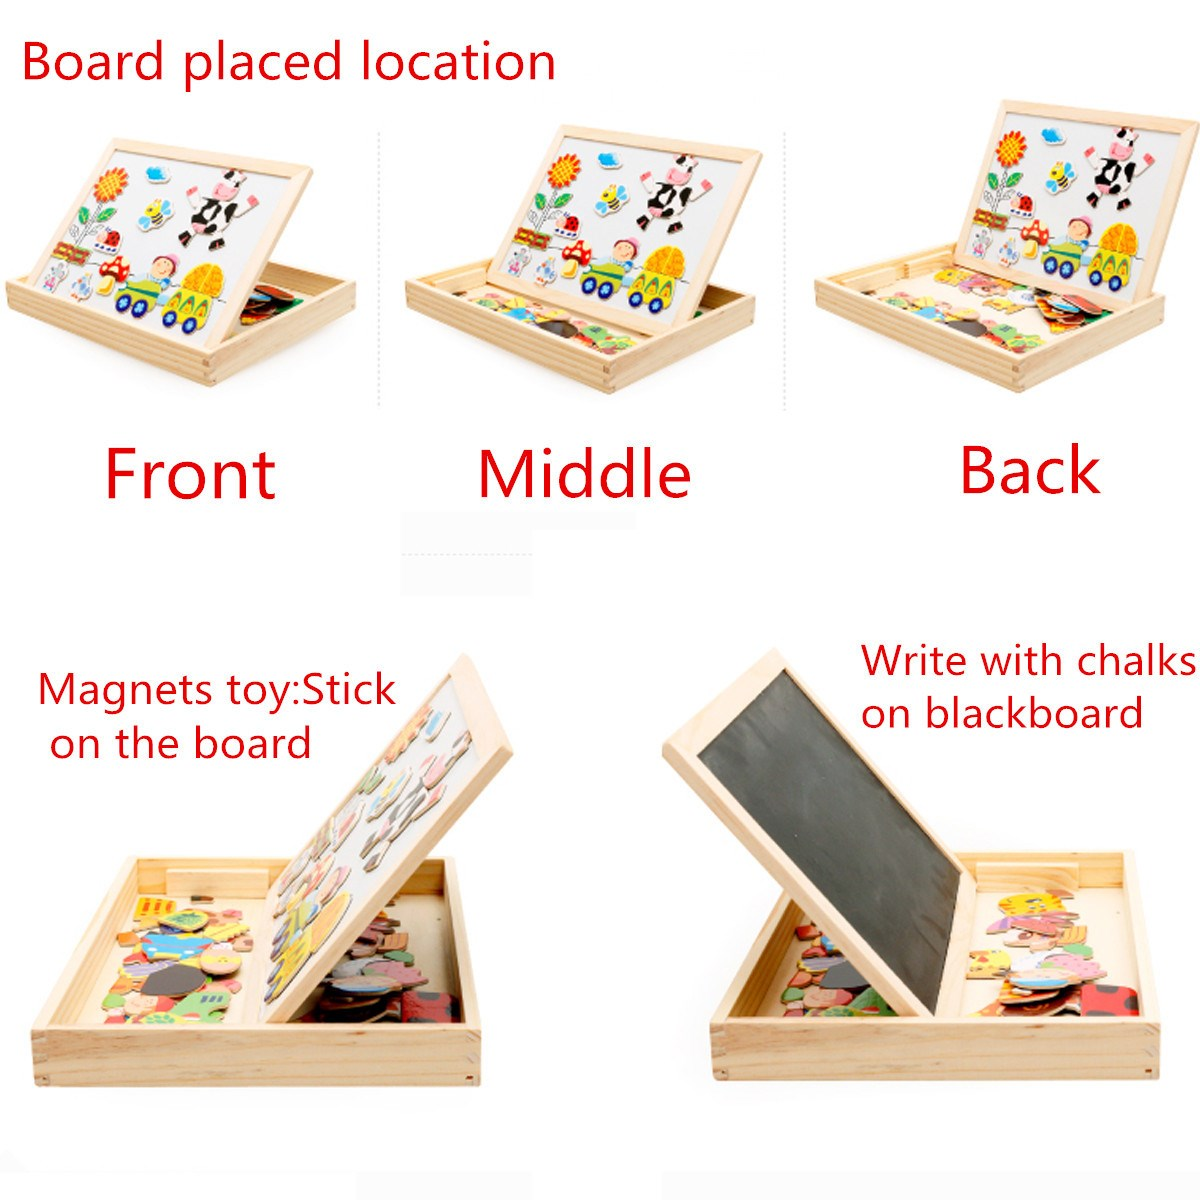 New-Arrival-Drawing-Writing-Board-Magnetic-Puzzle-Double-Easel-Kid-Wooden-Toy-Gift-Children-Intelligence-Development-Toy-4